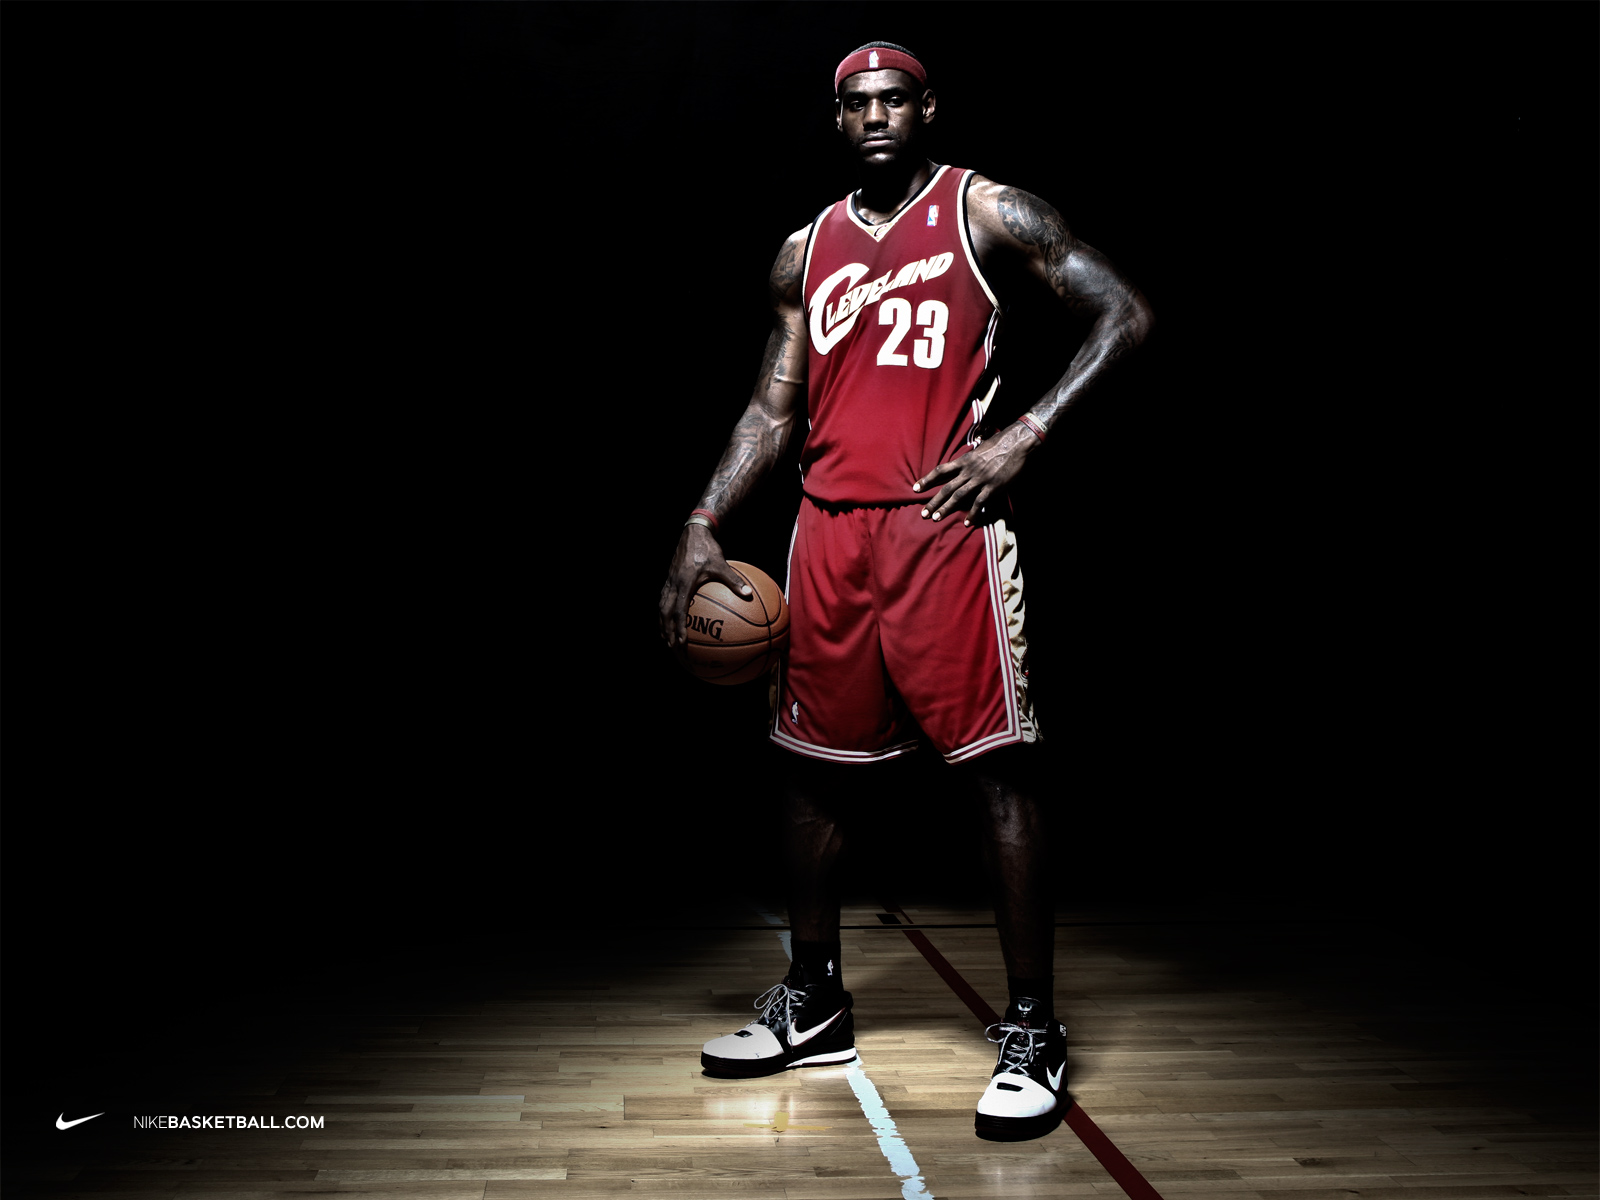 Lebron James Nike Logo Wallpaper Images 6 HD Wallpapers